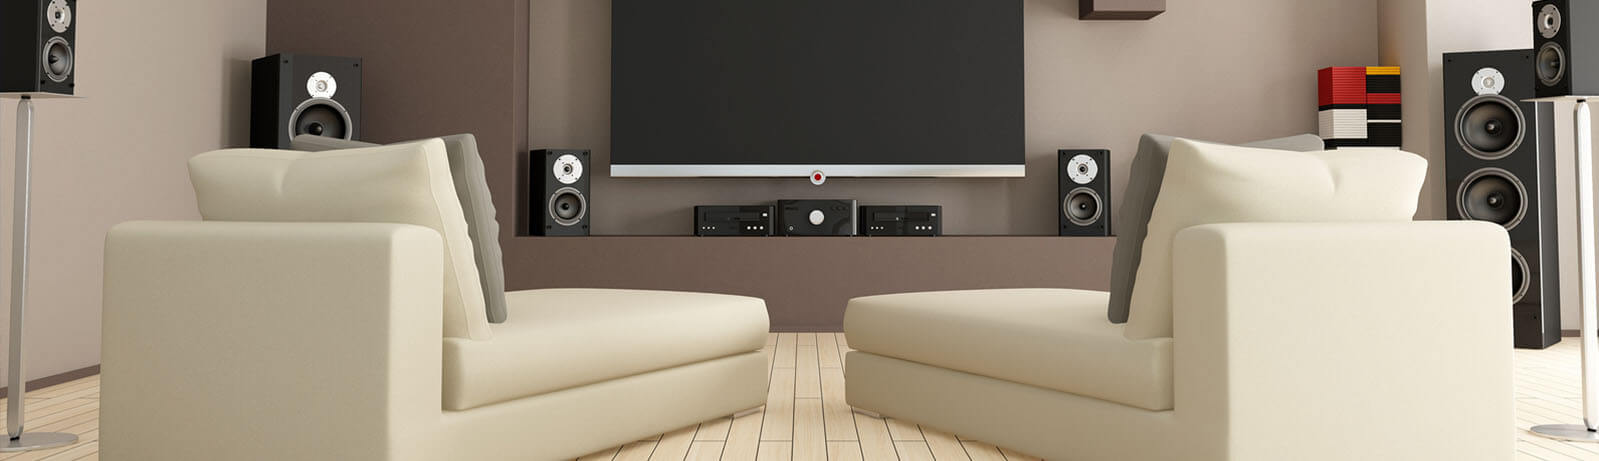 Enjoy the confort of your home with a nice theatre area